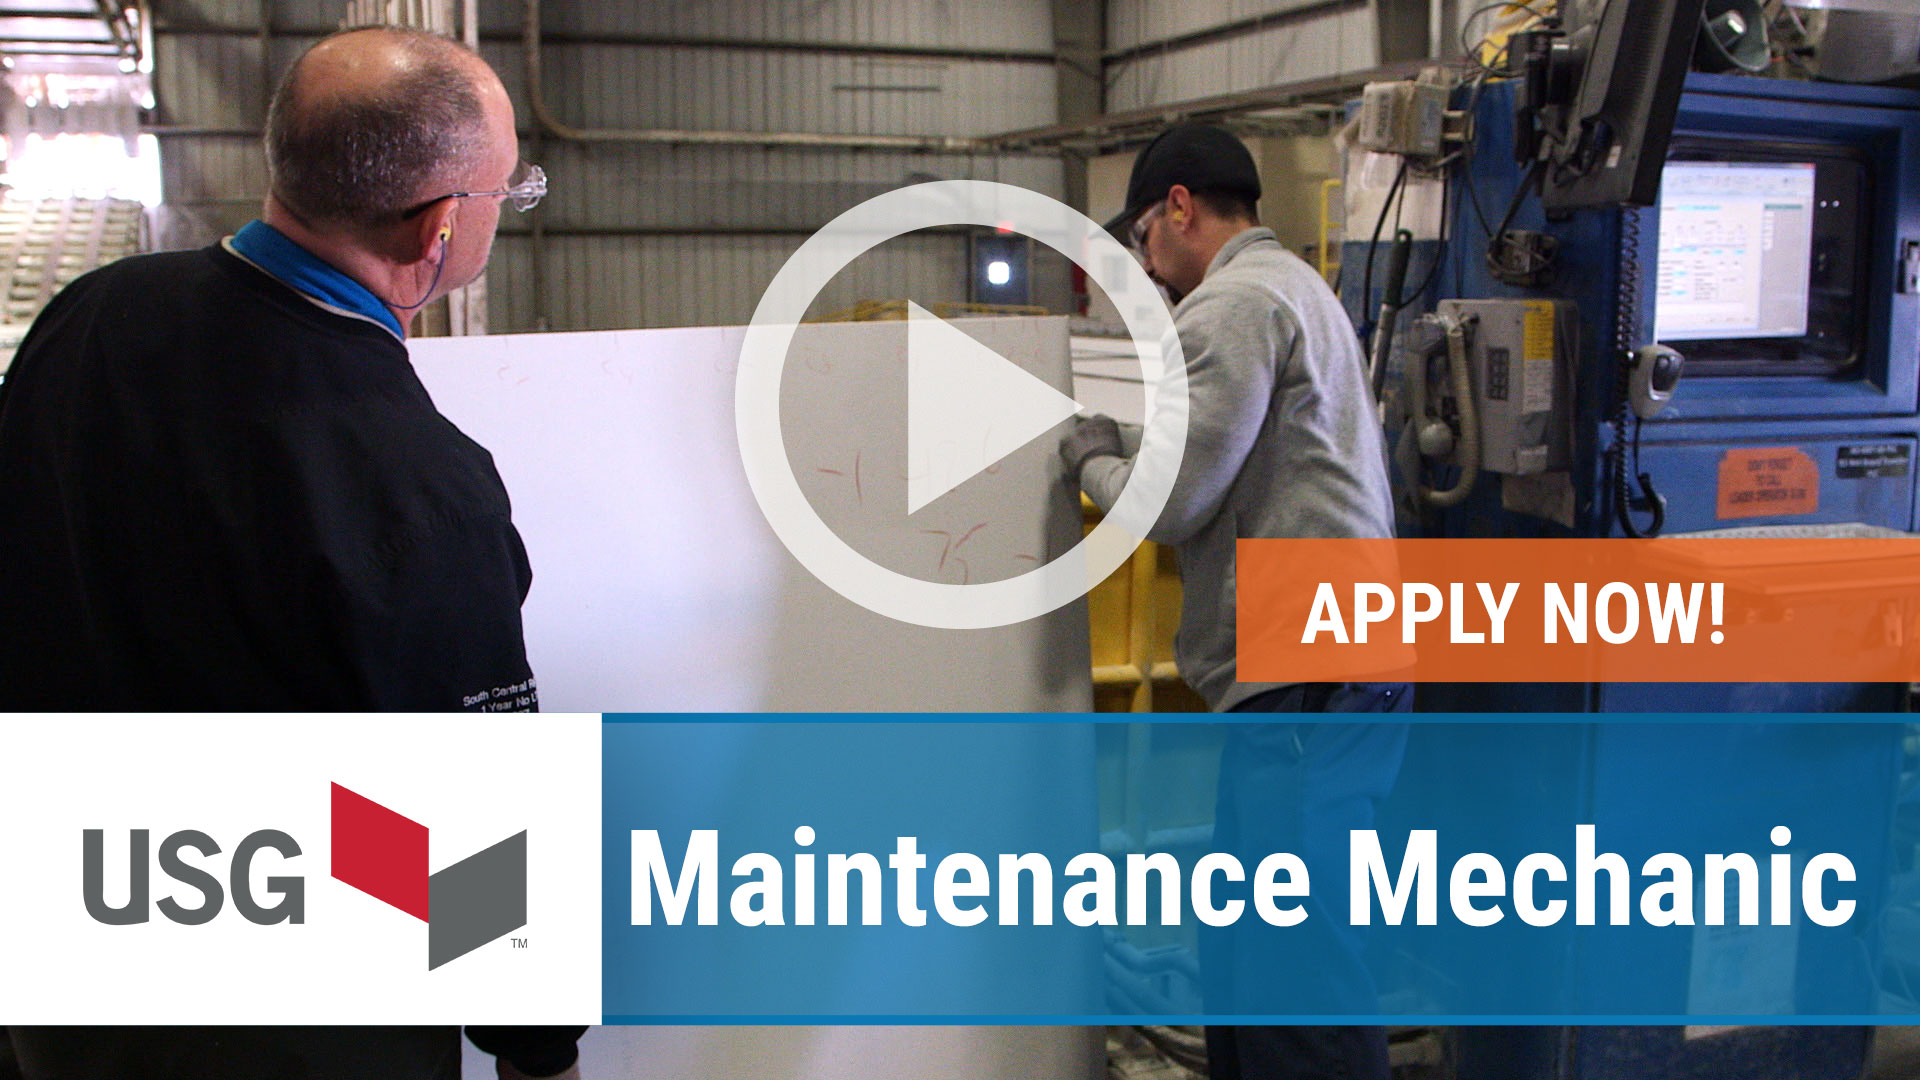 Watch our careers video for available job opening Maintenance Mechanic in Gypsum, OH, USA